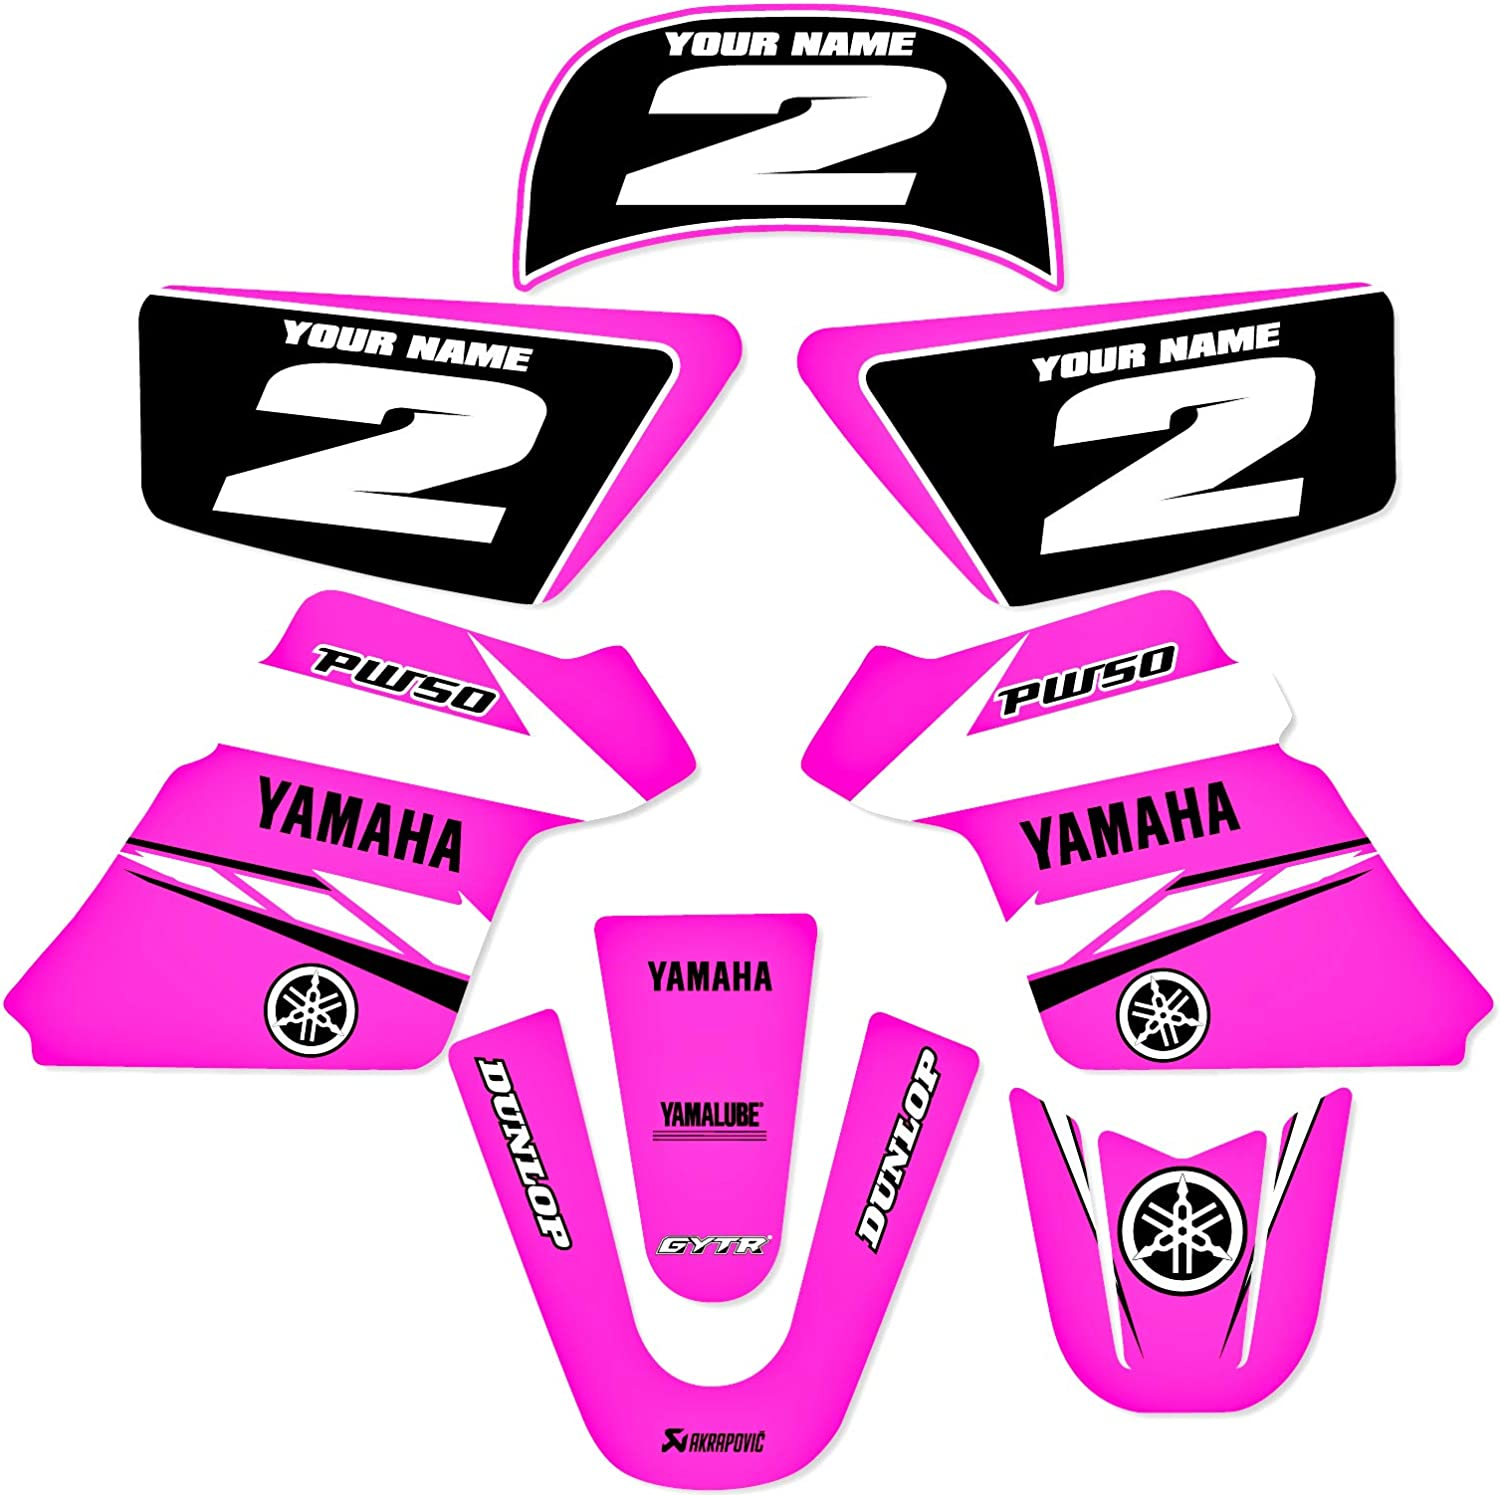 purple YAMAHA PW 50 PW50 GRAPHICS KIT DECALS DECO Fits Years 1990-2018 Enjoy Mfg